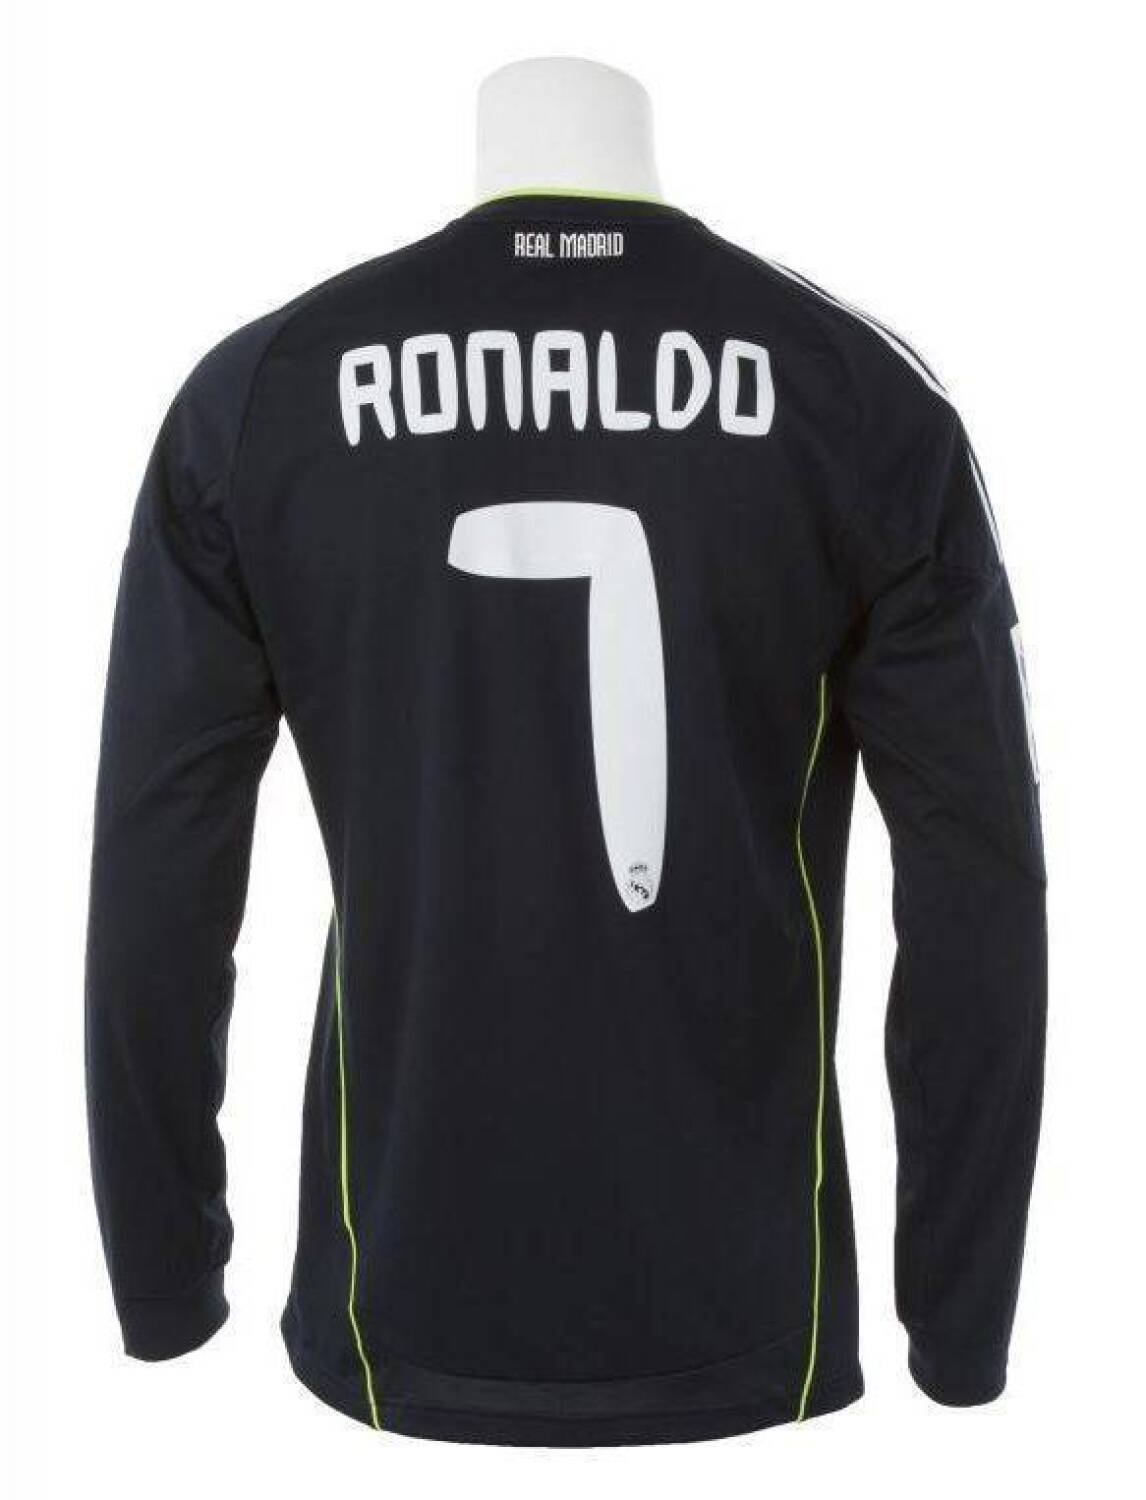 wholesale dealer bce2f 79925 CRISTIANO RONALDO 2010-11 REAL MADRID GAME WORN JERSEY ...